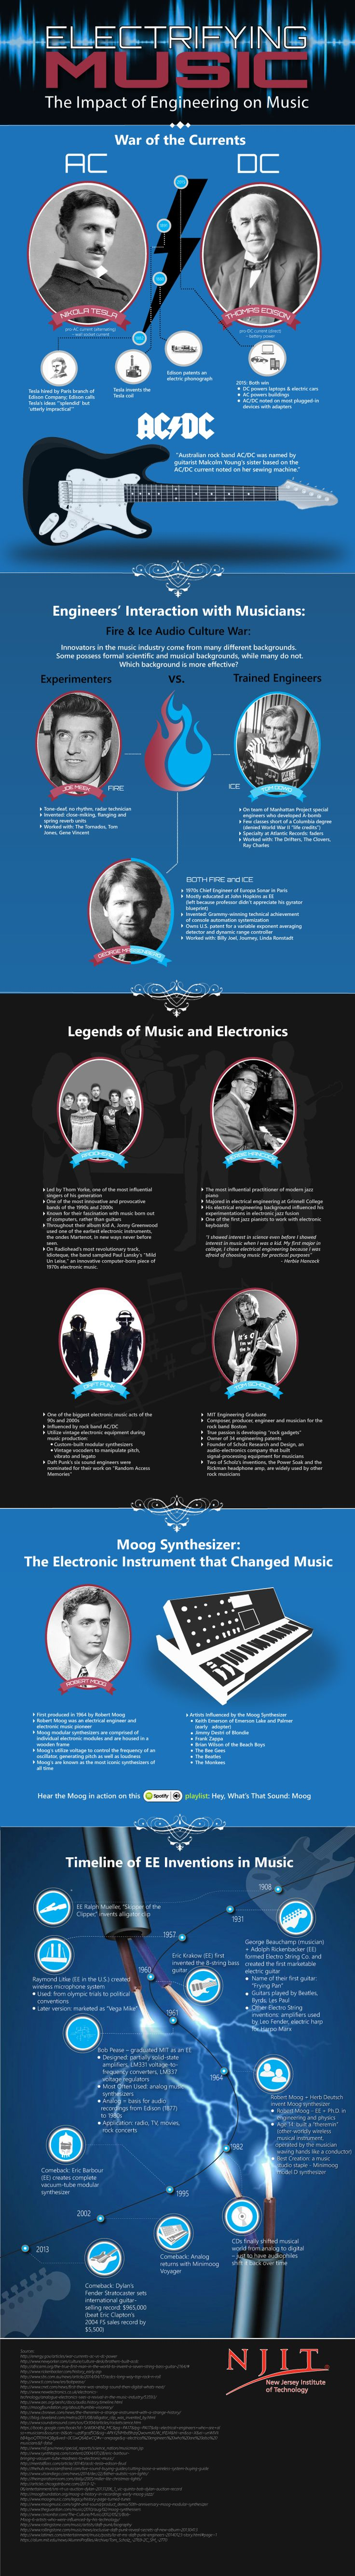 Electrifying Music: The Impact of Engineering on Music #Infographic #Music